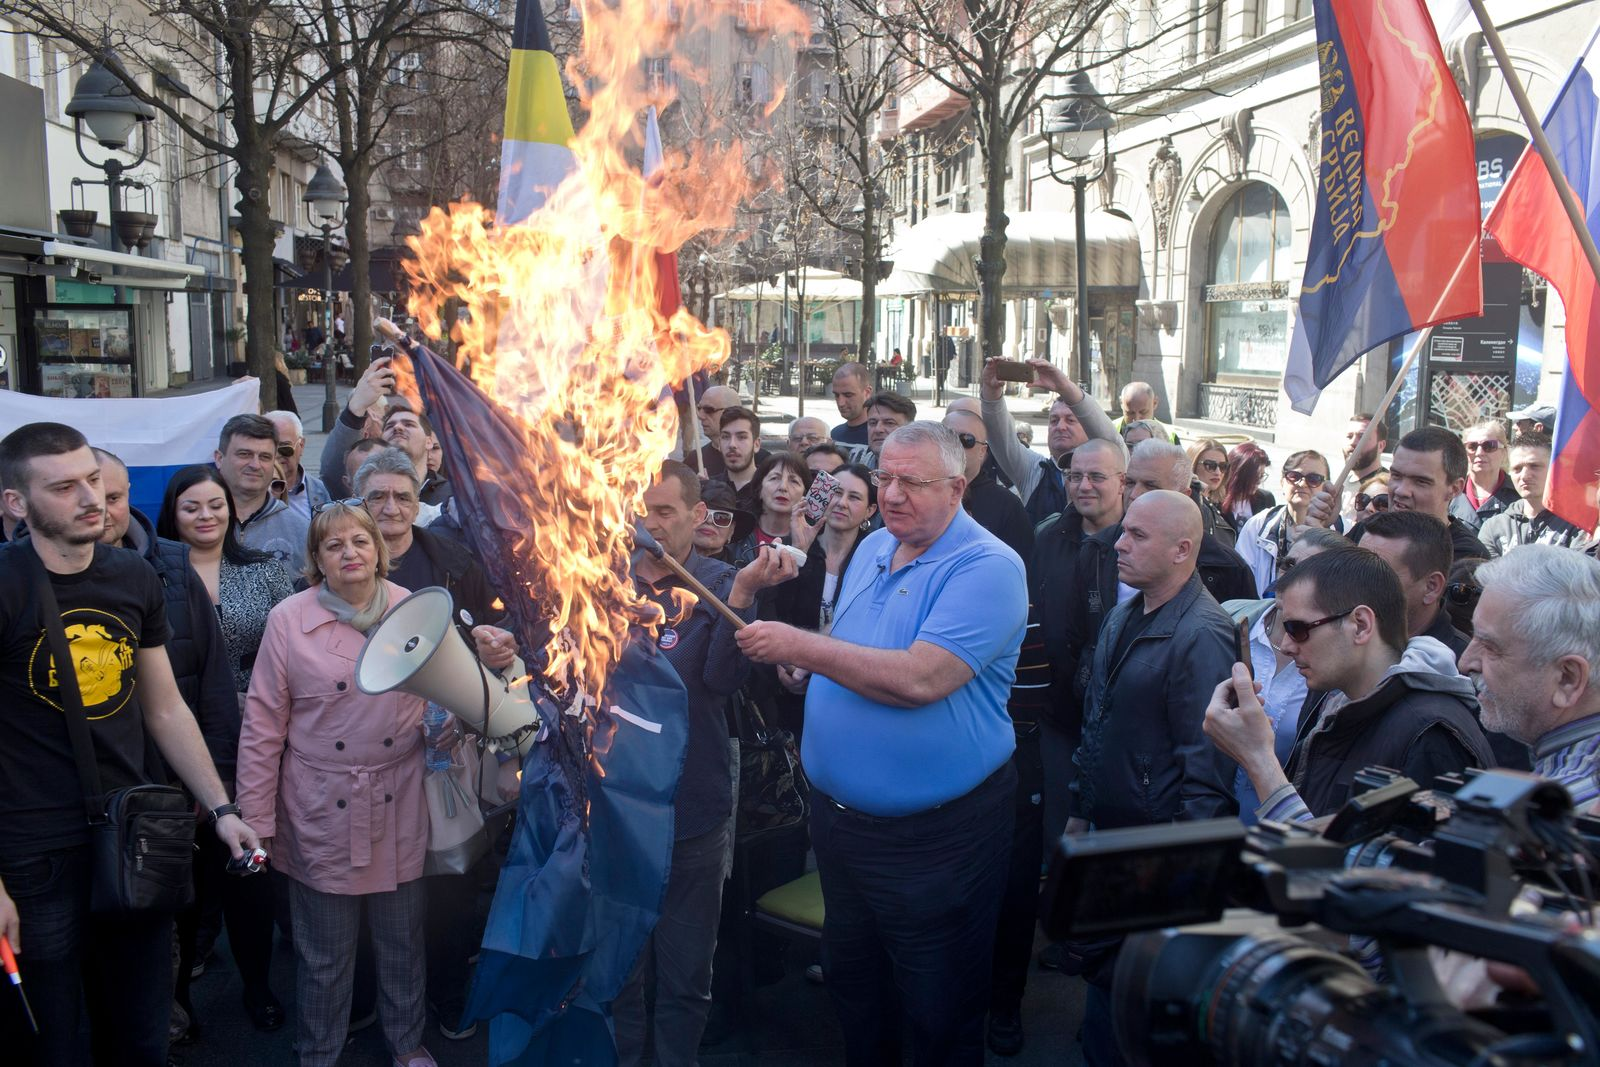 Vojislav Seselj, center, the leader of the ultranationalist Serbian Radical Party, holds a burning NATO flag as he and others gather for a protest in Belgrade, Serbia, Sunday, March 24, 2019.{ } (AP Photo/Marko Drobnjakovic)